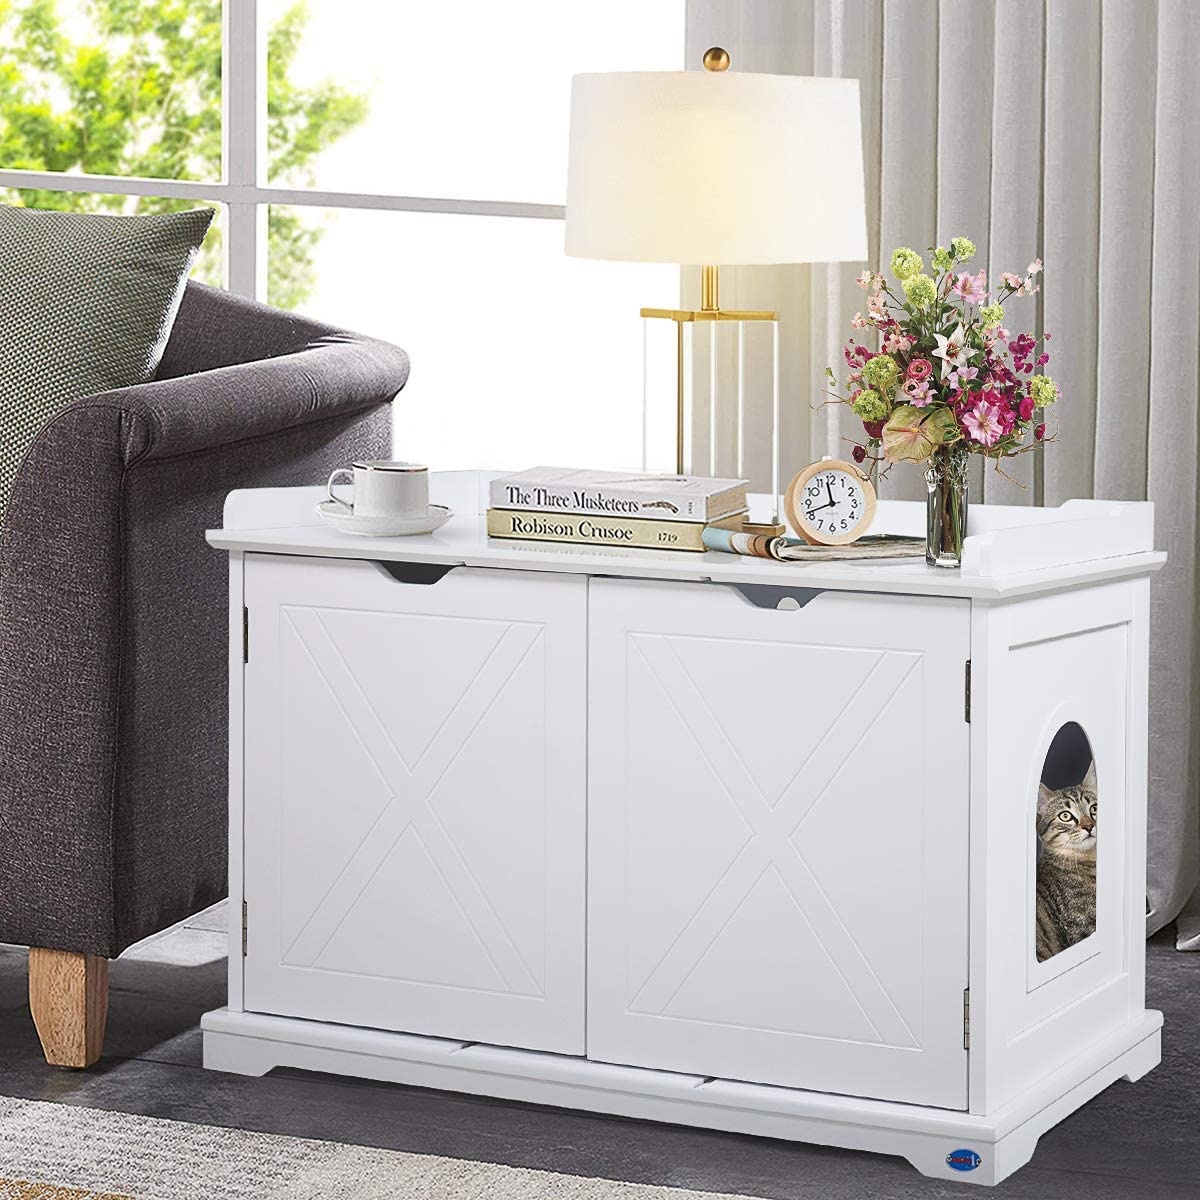 Easy Assembly Magnetized Double Doors End Table Litter Box Furniture COZIWOW Designer Cat Washroom Storage Bench Cabinet Spacious Inner with Removable Panel